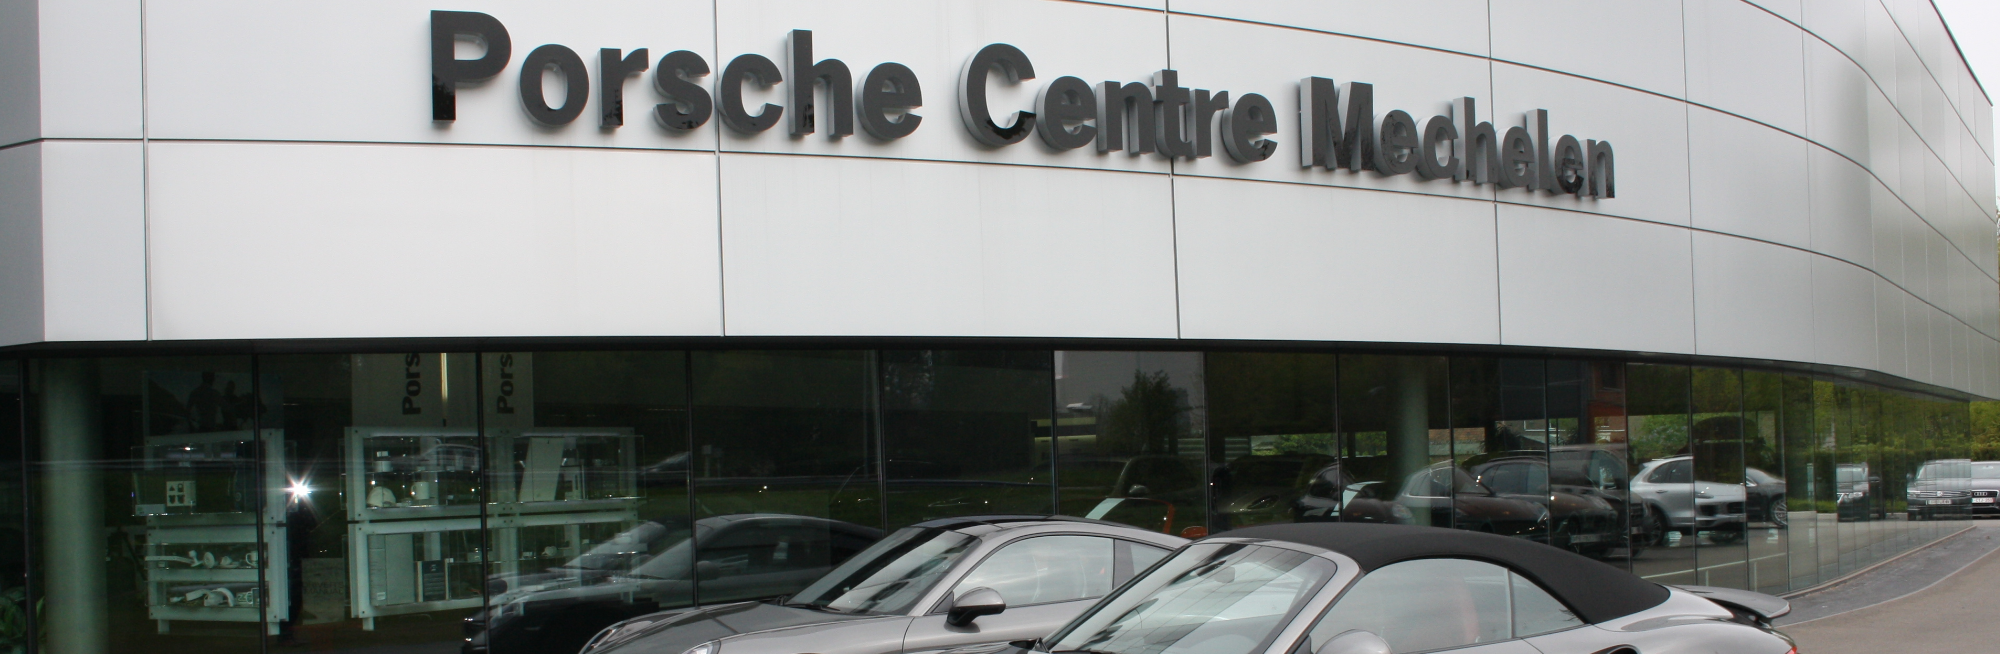 Maris beveiliging Porsche Centre Mechelen